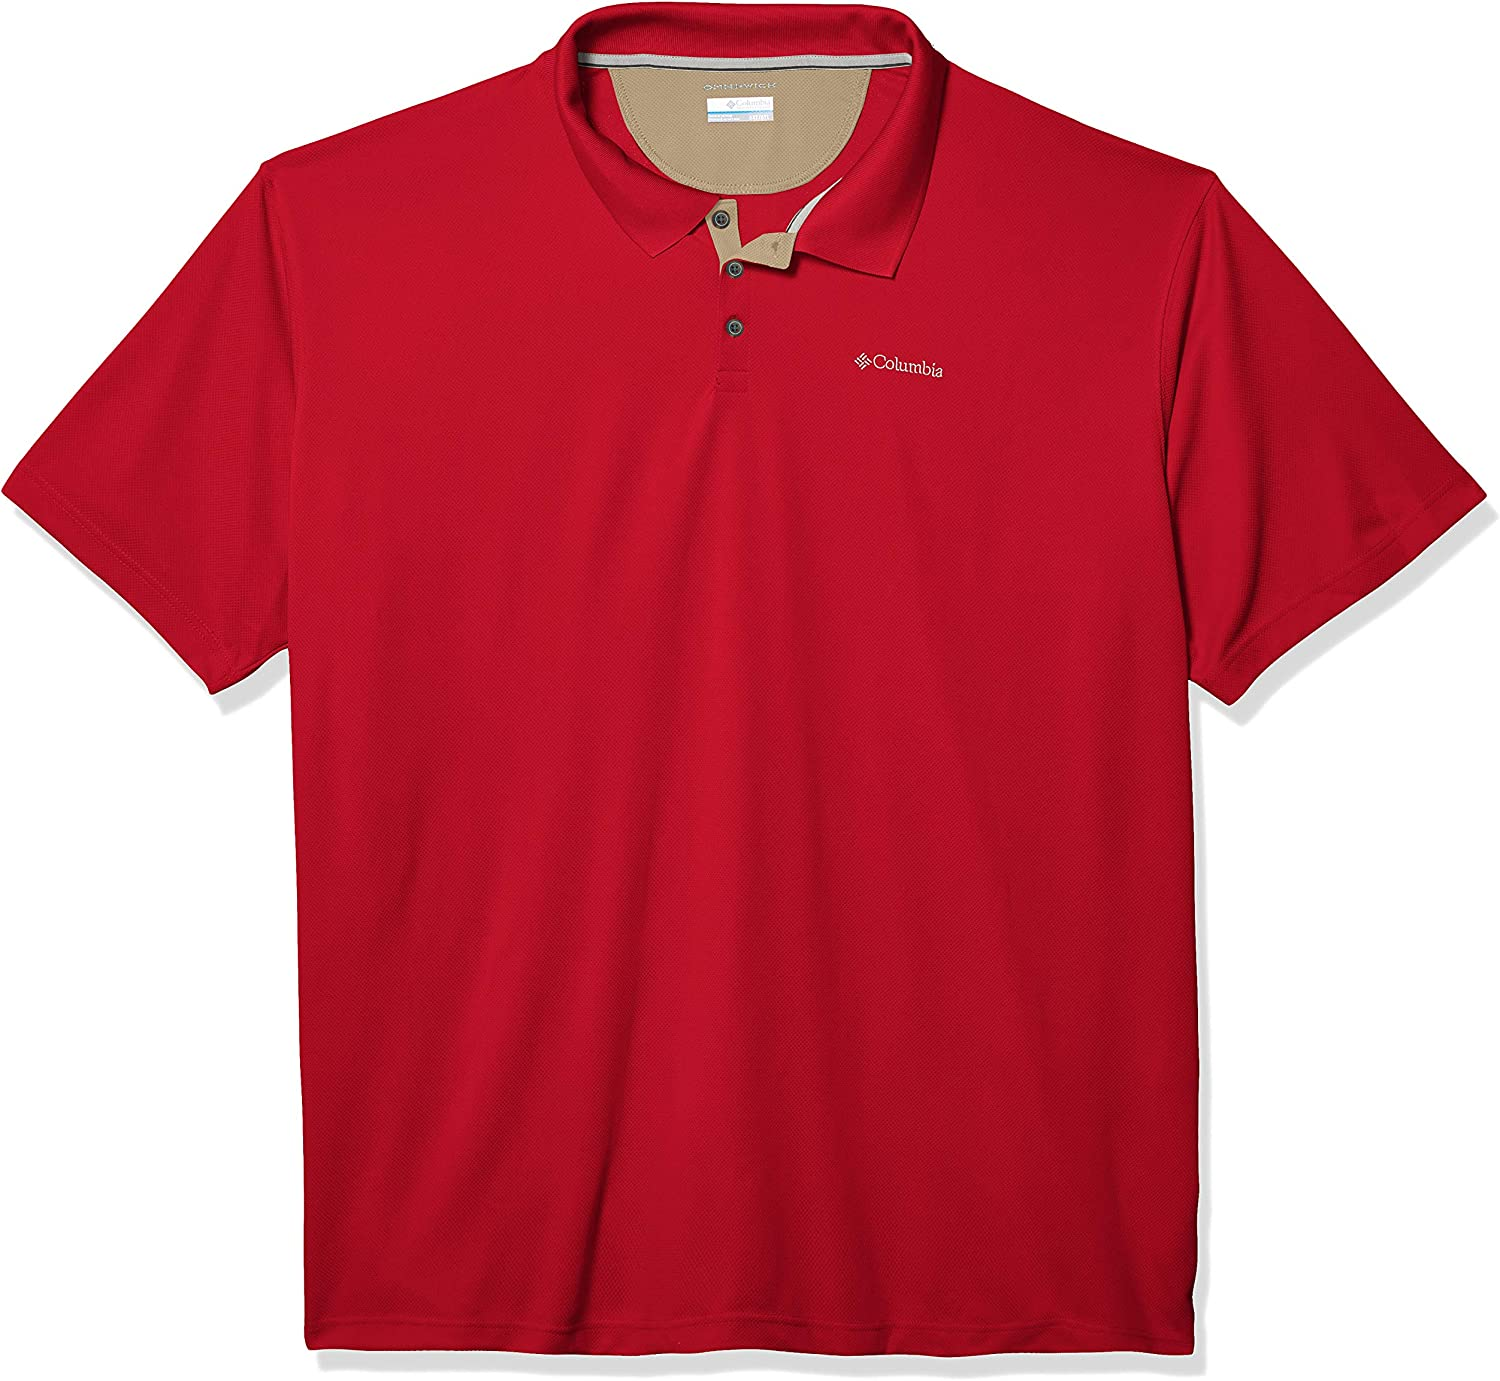 Columbia Mens Utilizer Short Sleeve Wicking and Sun Protection Shirt